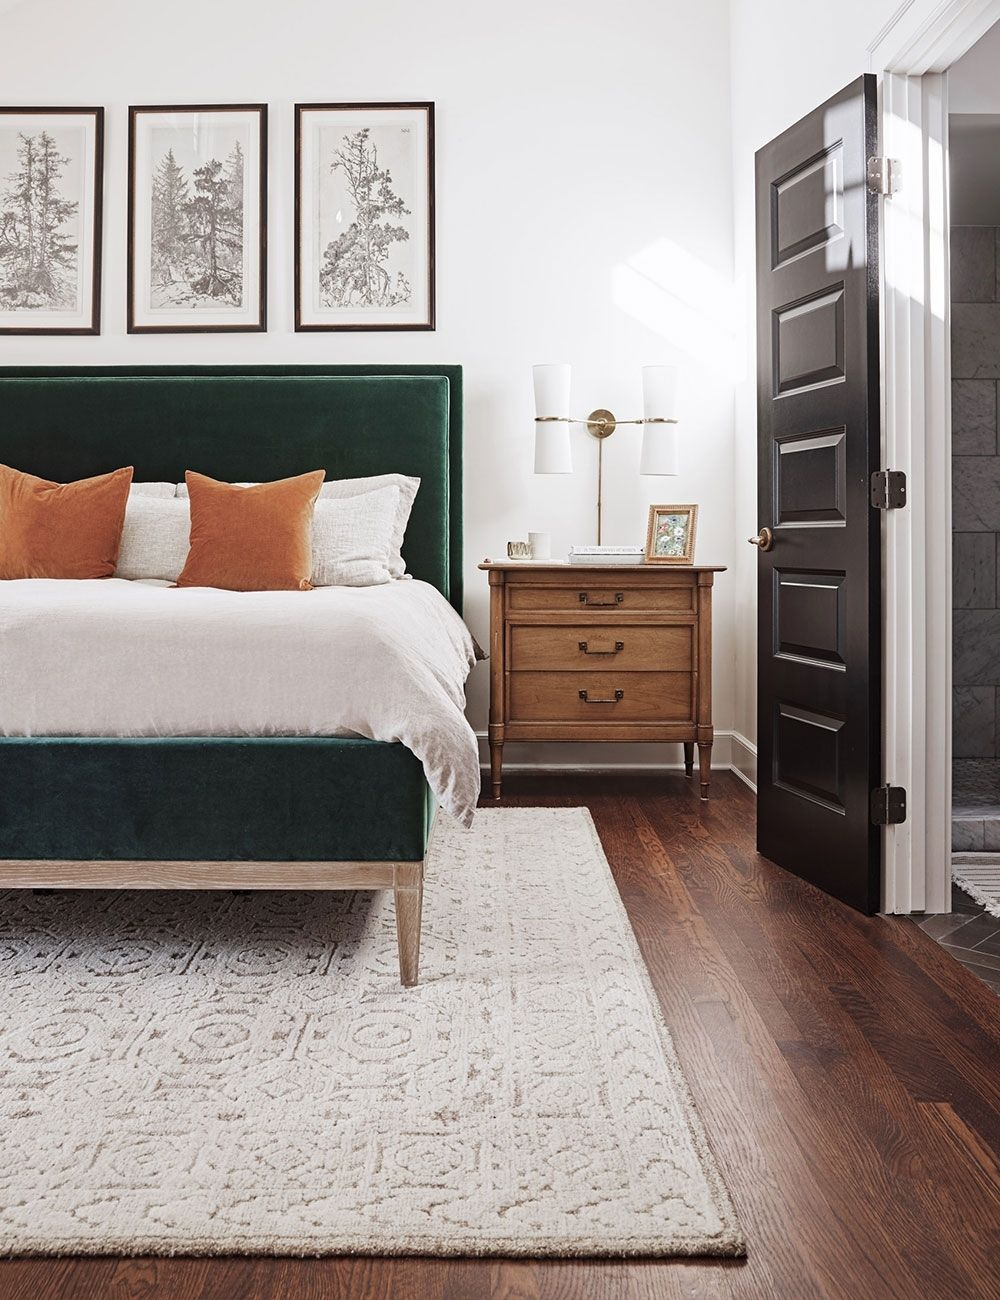 Pin On Rivermaster Master bedroom apartment ideas